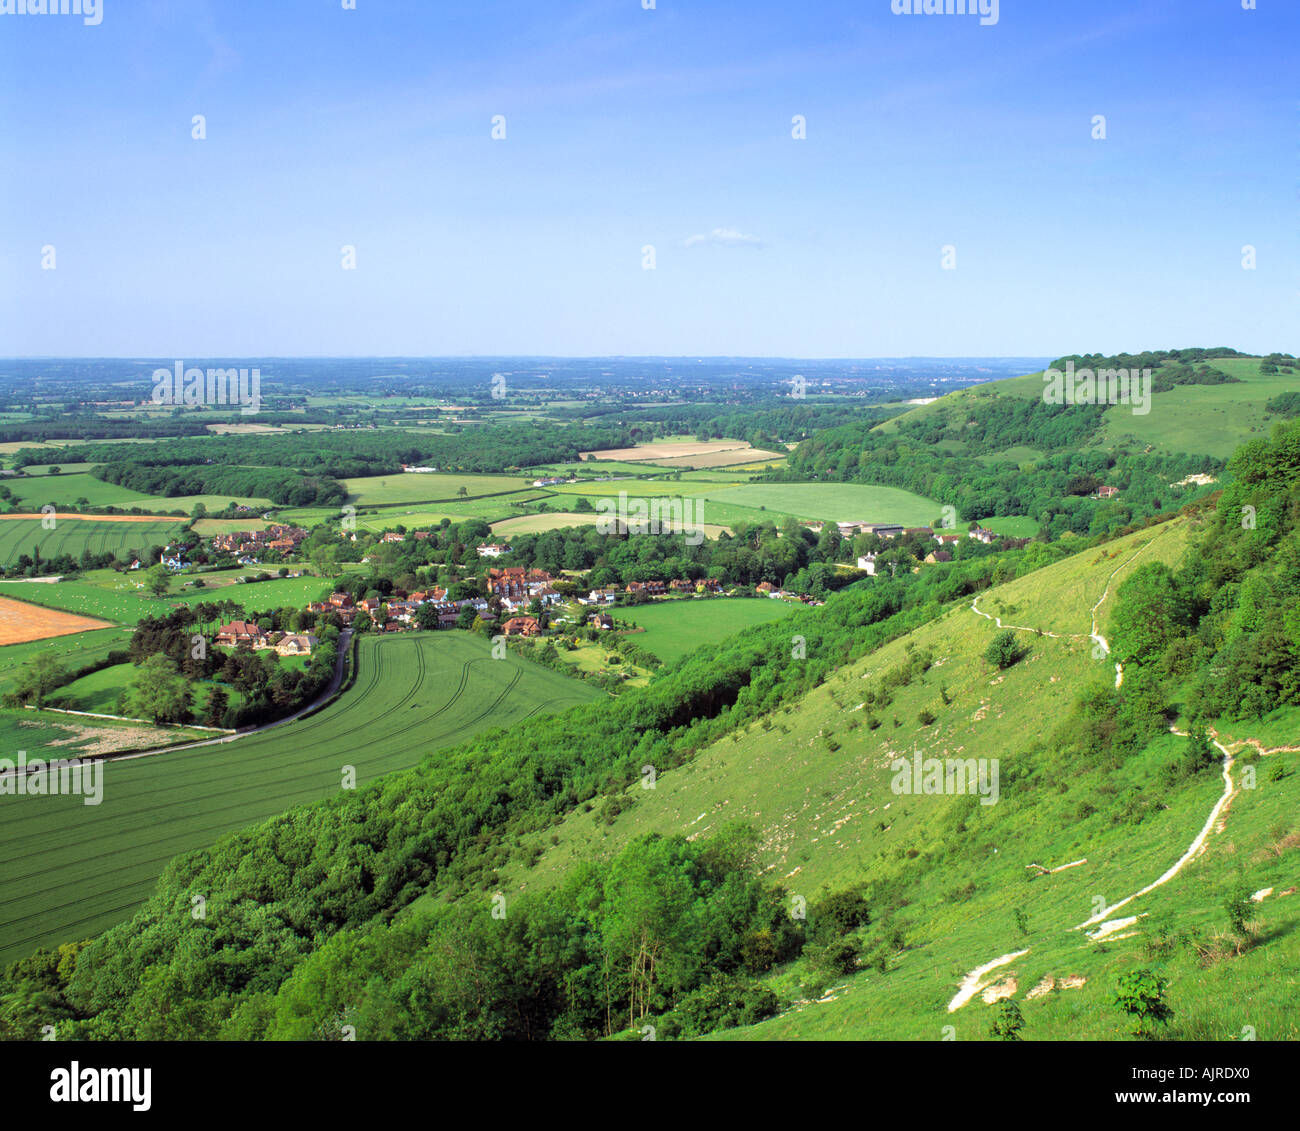 GB SUSSEX SOUTH DOWNS DEVILS DYKE POYNINGS VILLAGE - Stock Image